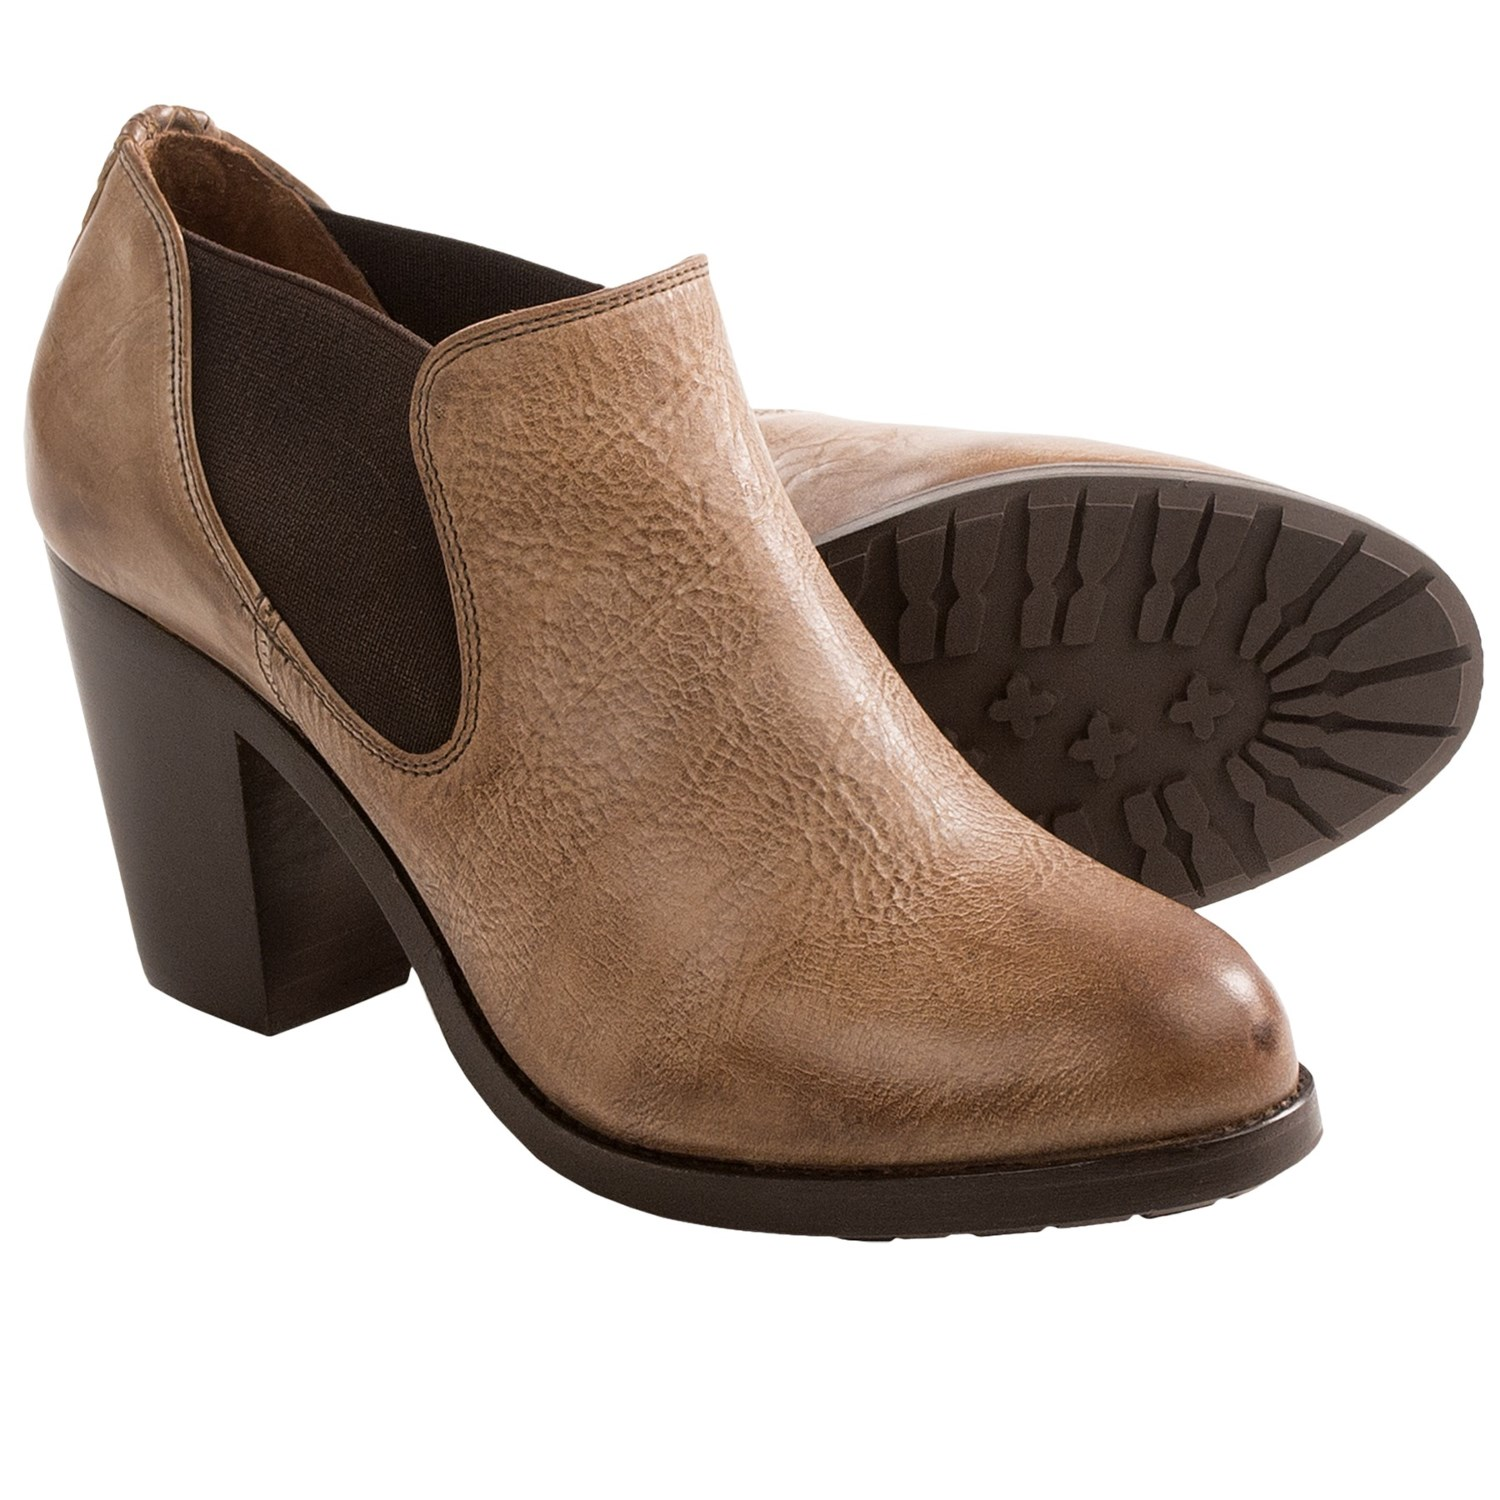 Awesome A Collection Of Womens Ankle Boots This Assortment Includes Five  The Grouping Also Includes A Pair Of Gray Boots With Side Zippers And A Pair Of Black Leather Boots With Pointed Toes